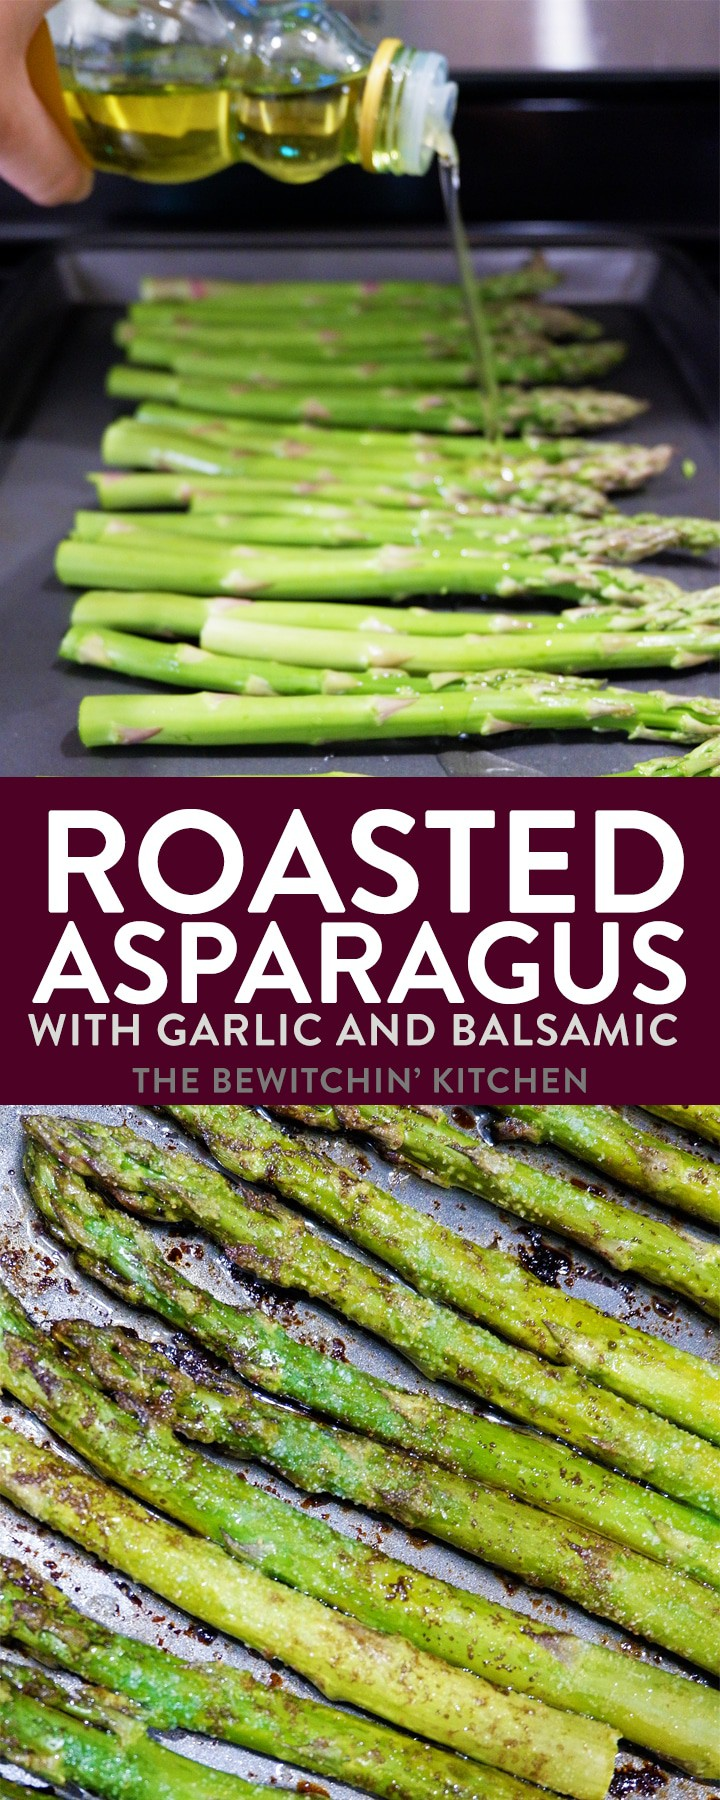 Easy and delicious oven roasted asparagus with garlic and balsamic. Serve this as a healthy side dish with your steak dinner or grilled chicken.